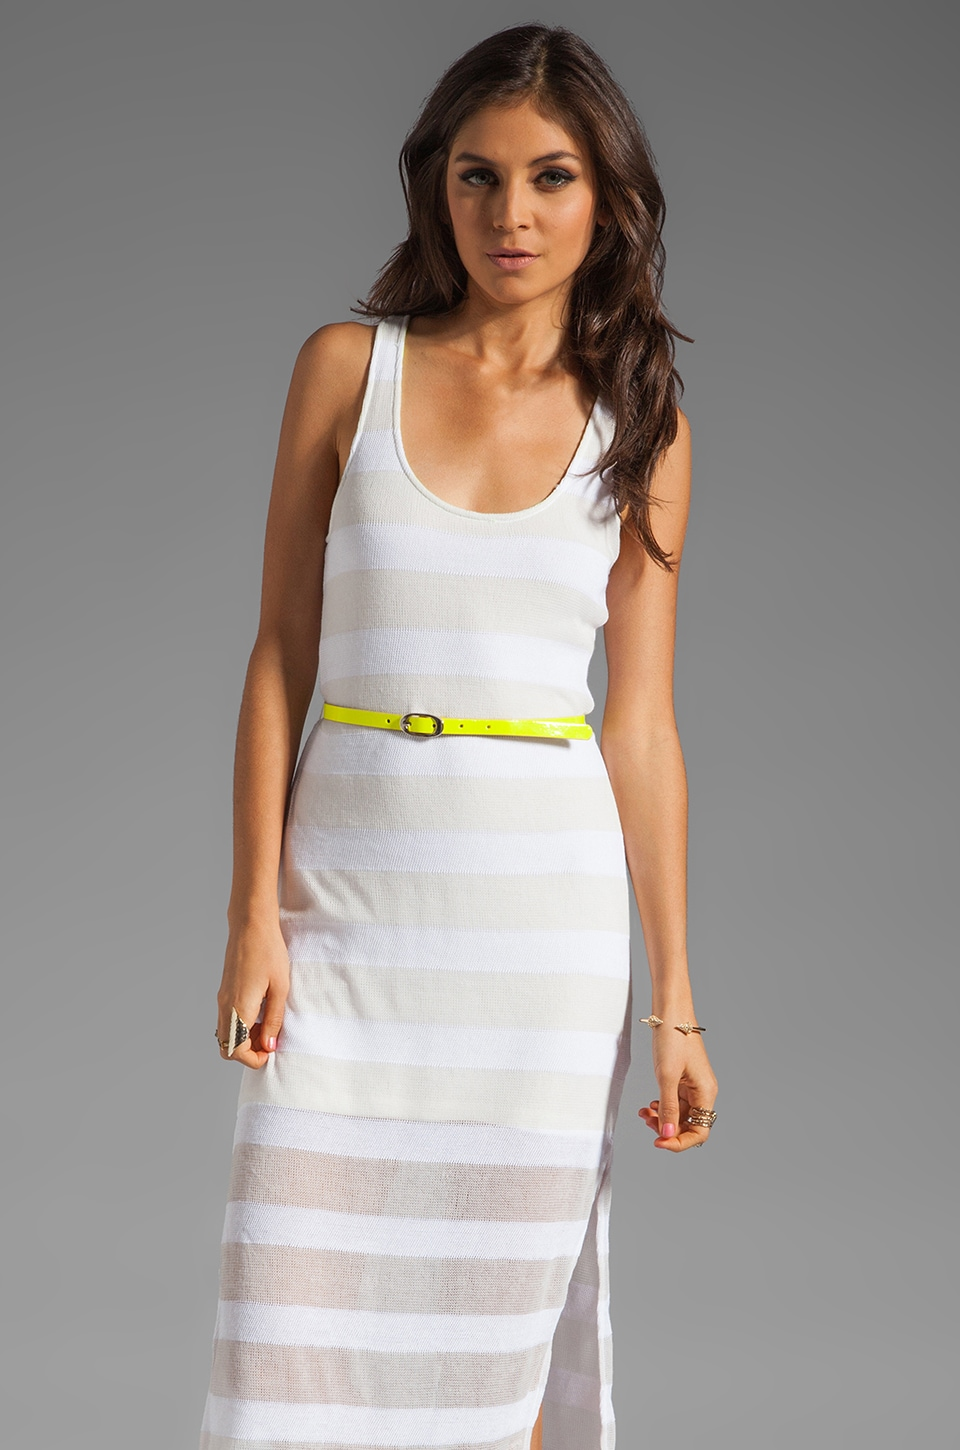 Dolce Vita Anoush Dress in White